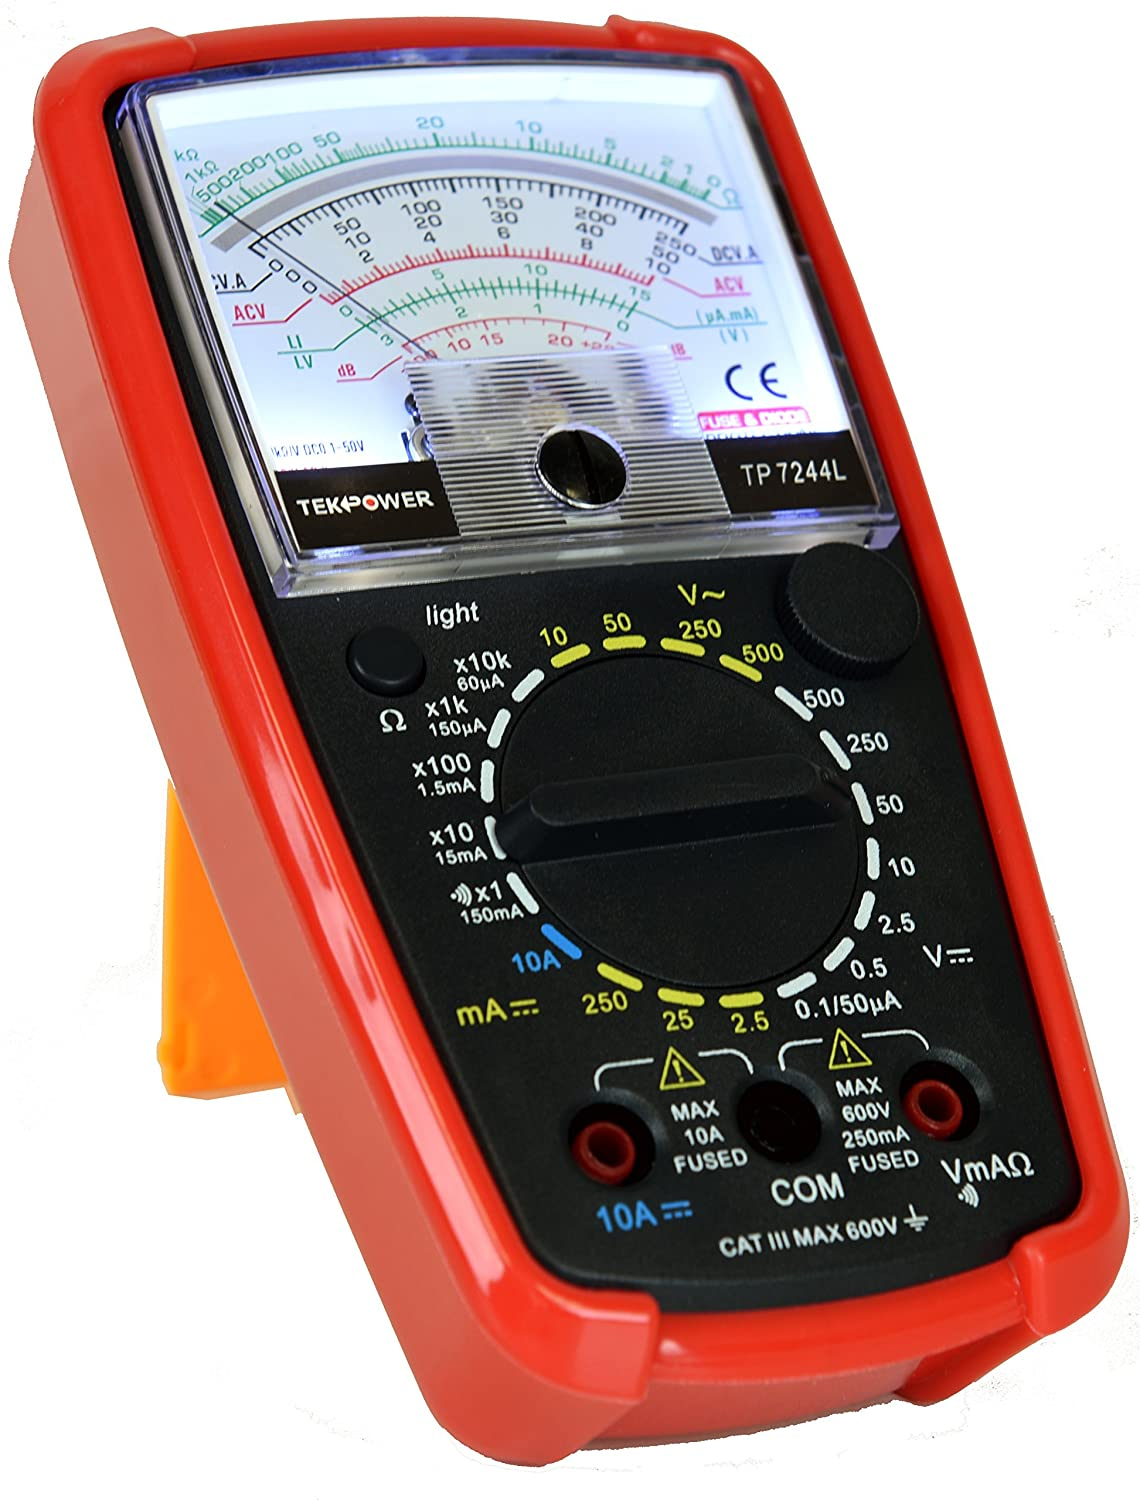 Tekpower Tp7244l 7 Function 20 Range Analog Multimeter How To Test Car Fuse Box With Back Light Strong Protective Holster Home Improvement